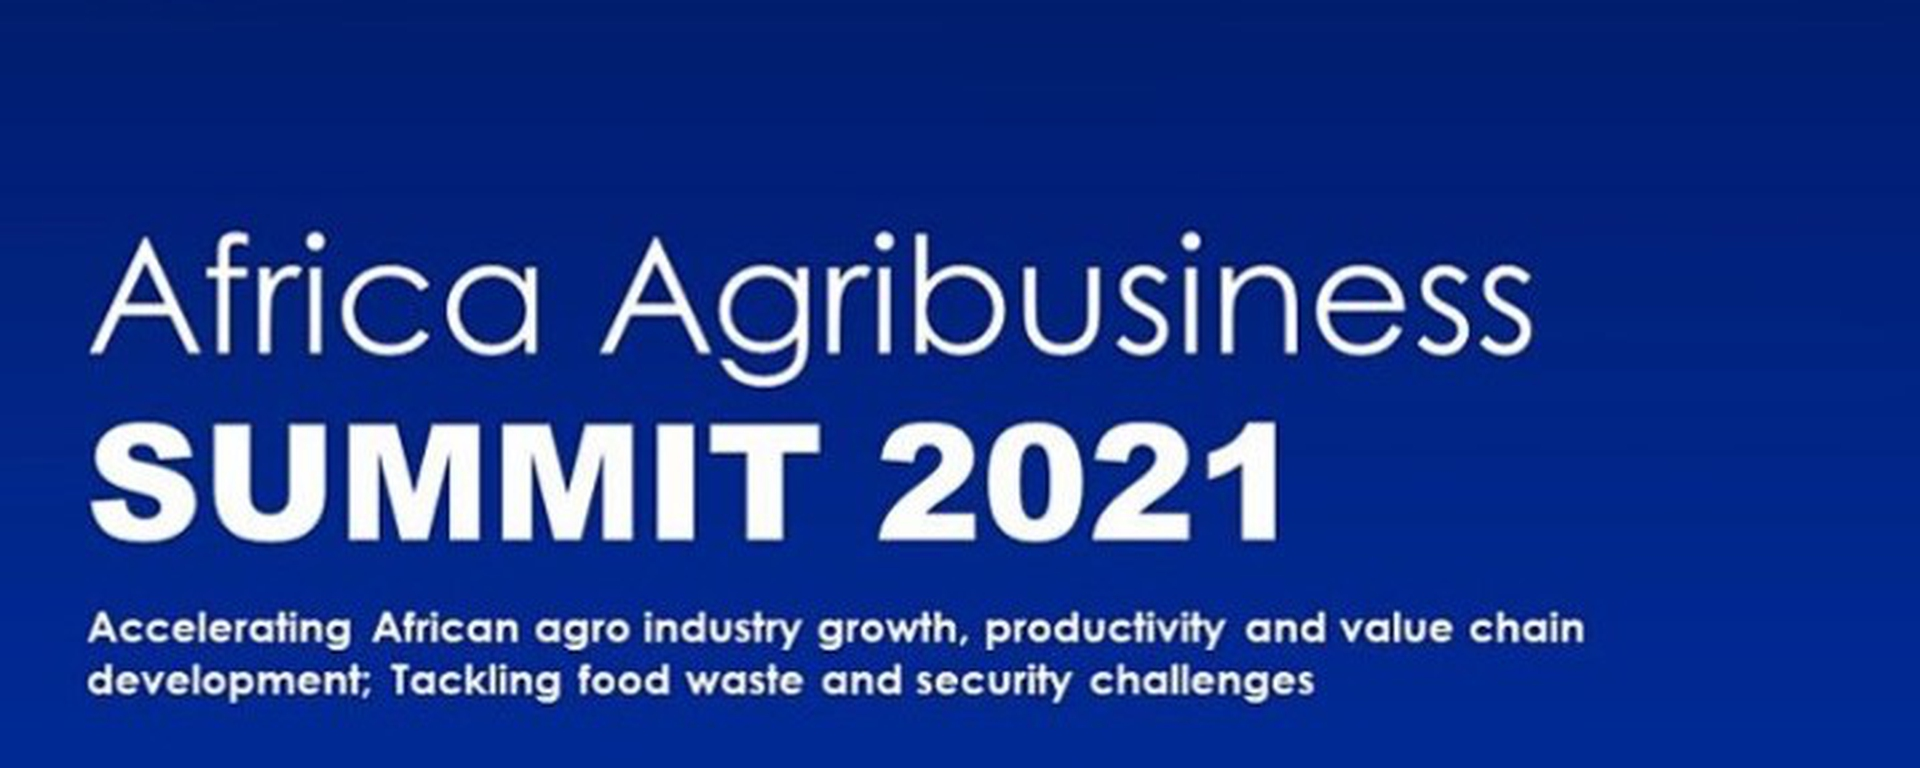 SSCG Consulting - Africa Agribusiness Summit 2021 Movemeback African event cover image